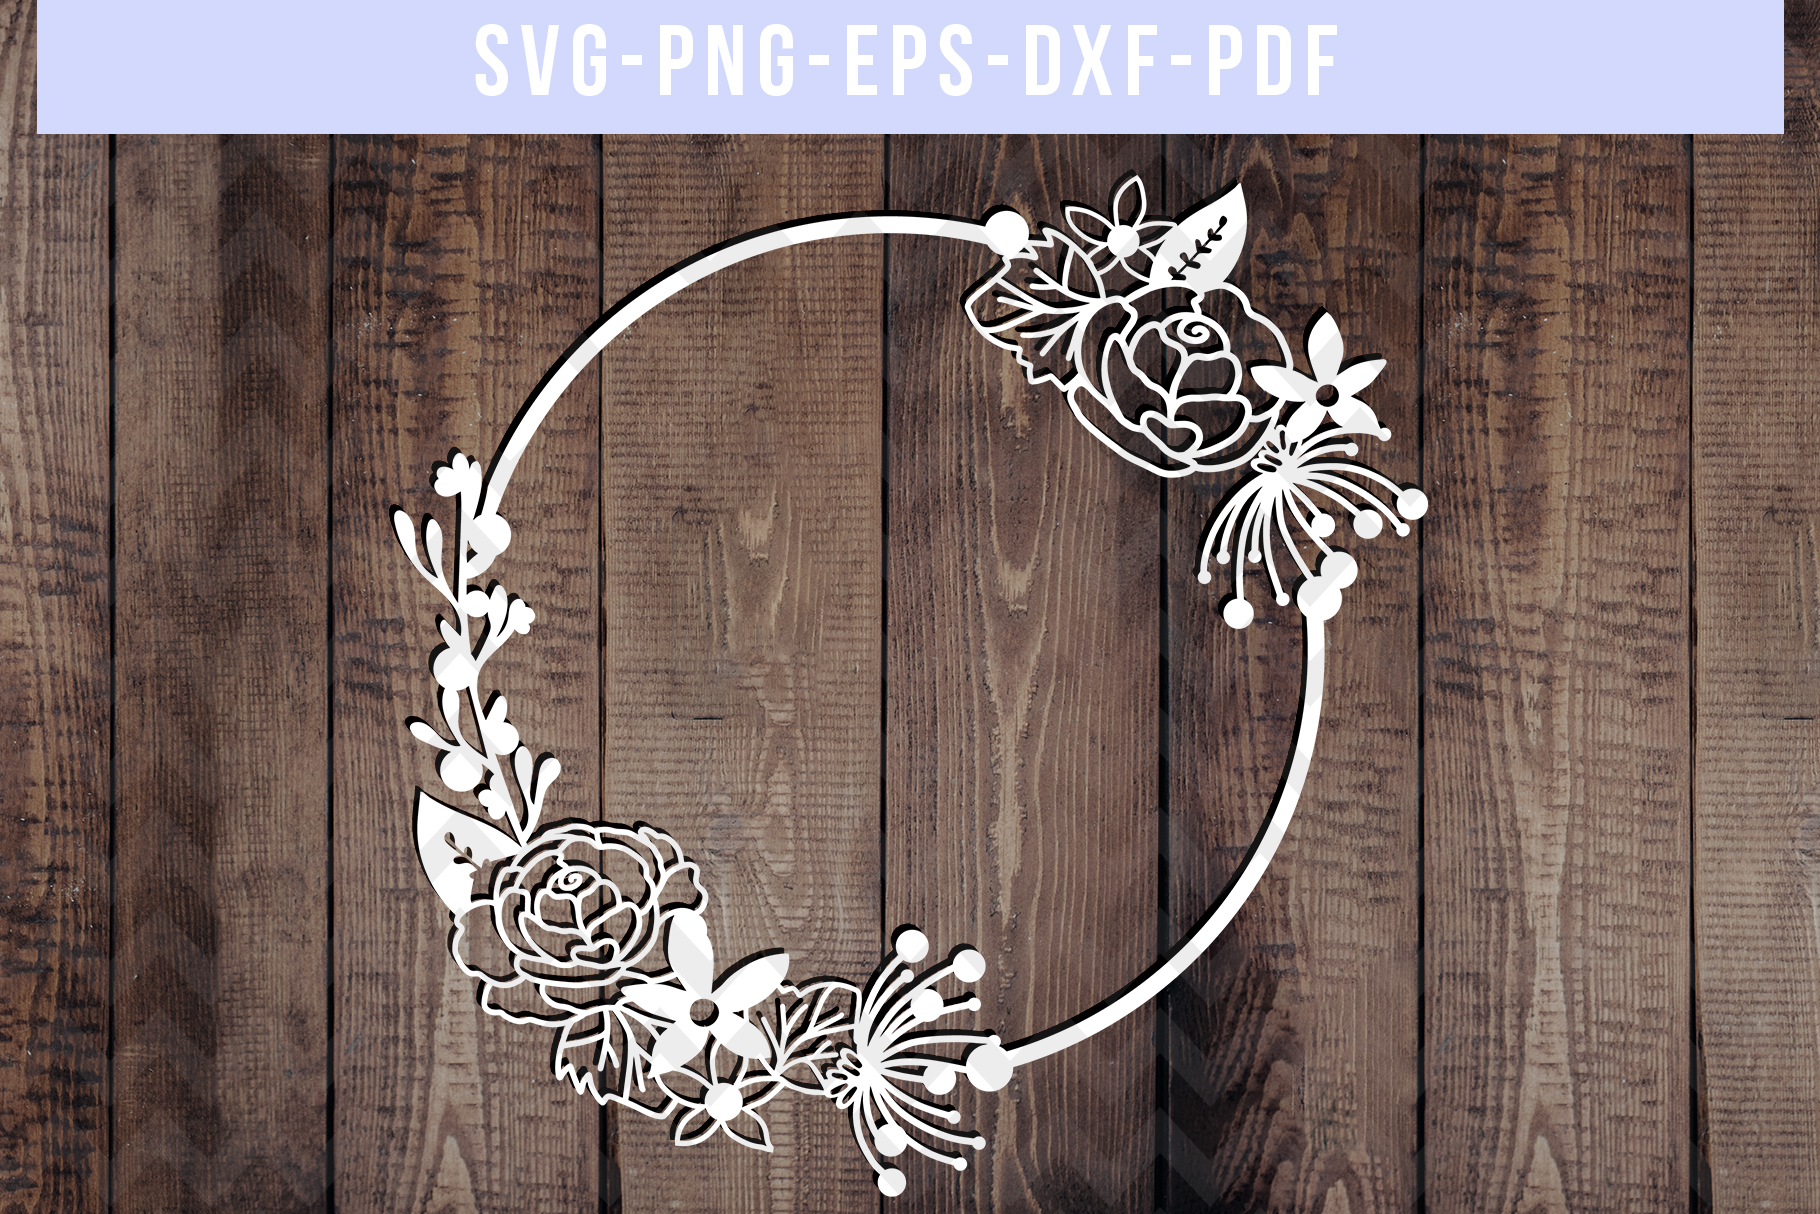 Bundle Of 9 Floral Wedding Papercut Templates, SVG, DXF. PDF example image 8